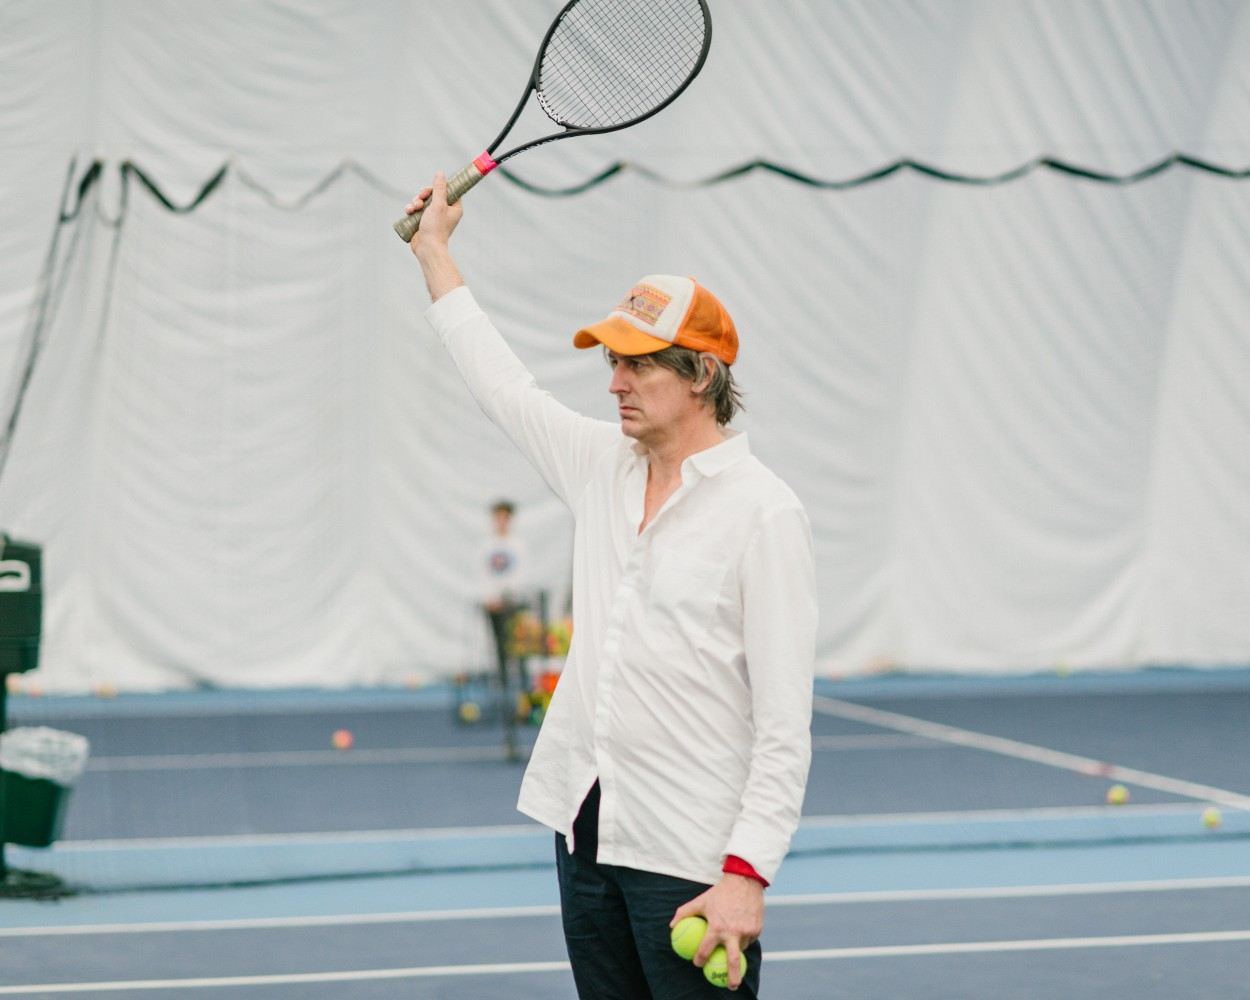 The Casual Tennis Fans Nostalgia For >> Stephen Malkmus Interview Tennis Lessons With The Indie Legend